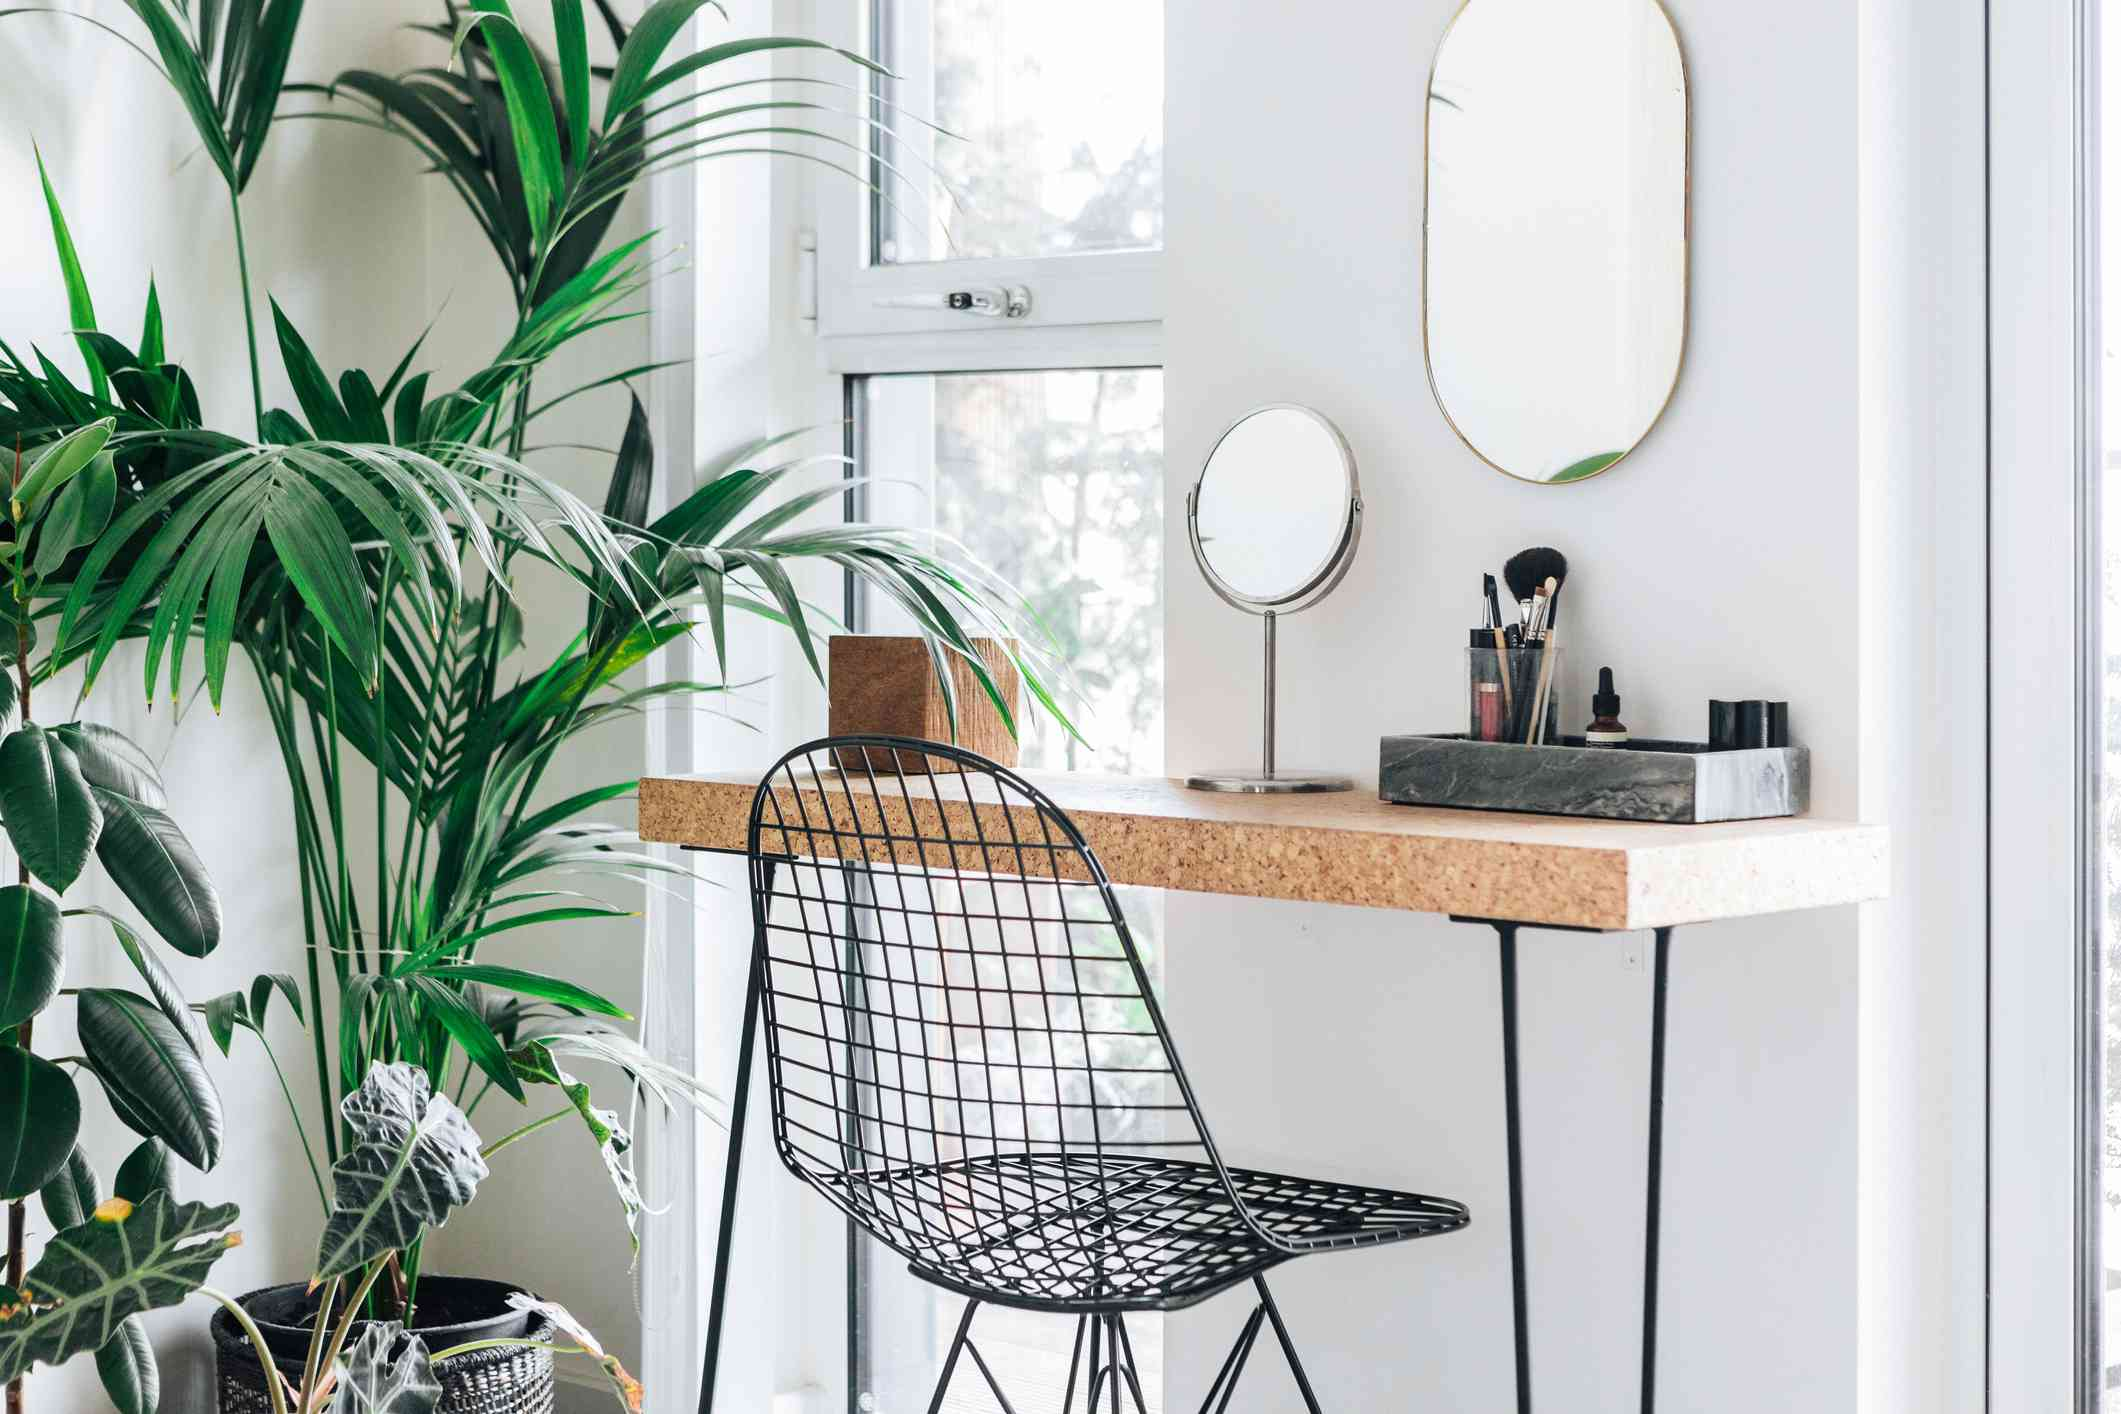 A corner of the modern, stylish and bright bedroom with plants and mirror